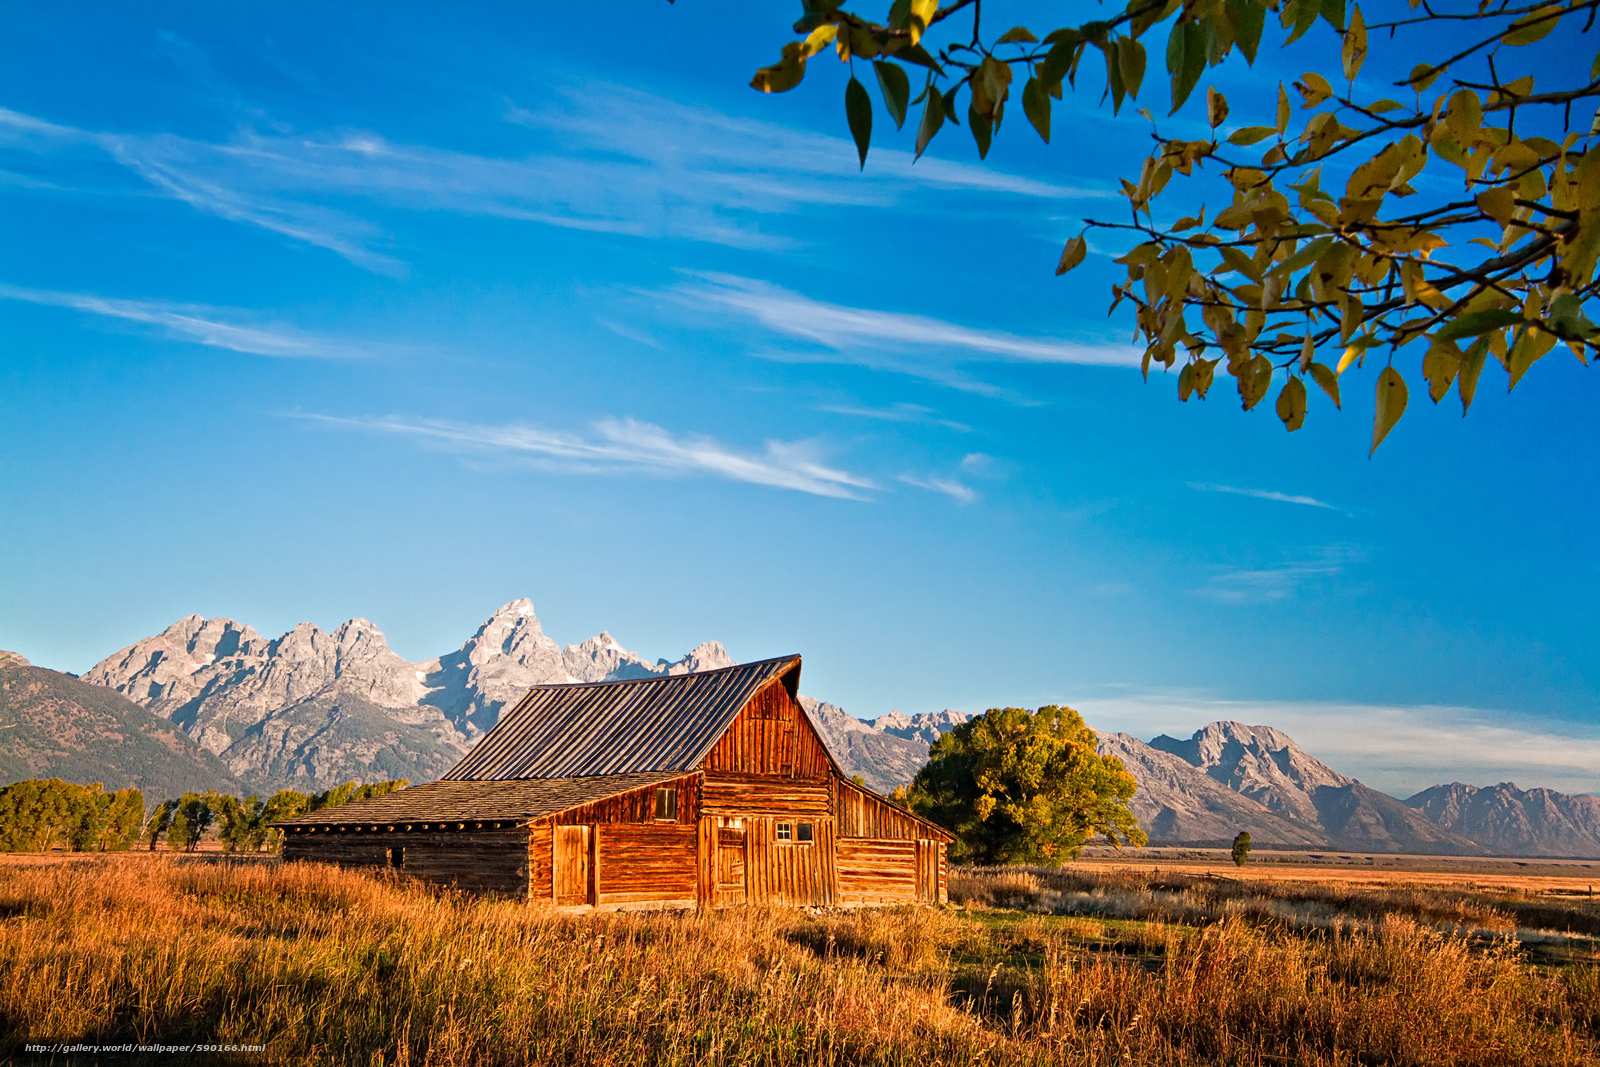 Jackson Hole Wyoming desktop wallpaper in the resolution 1600x1067